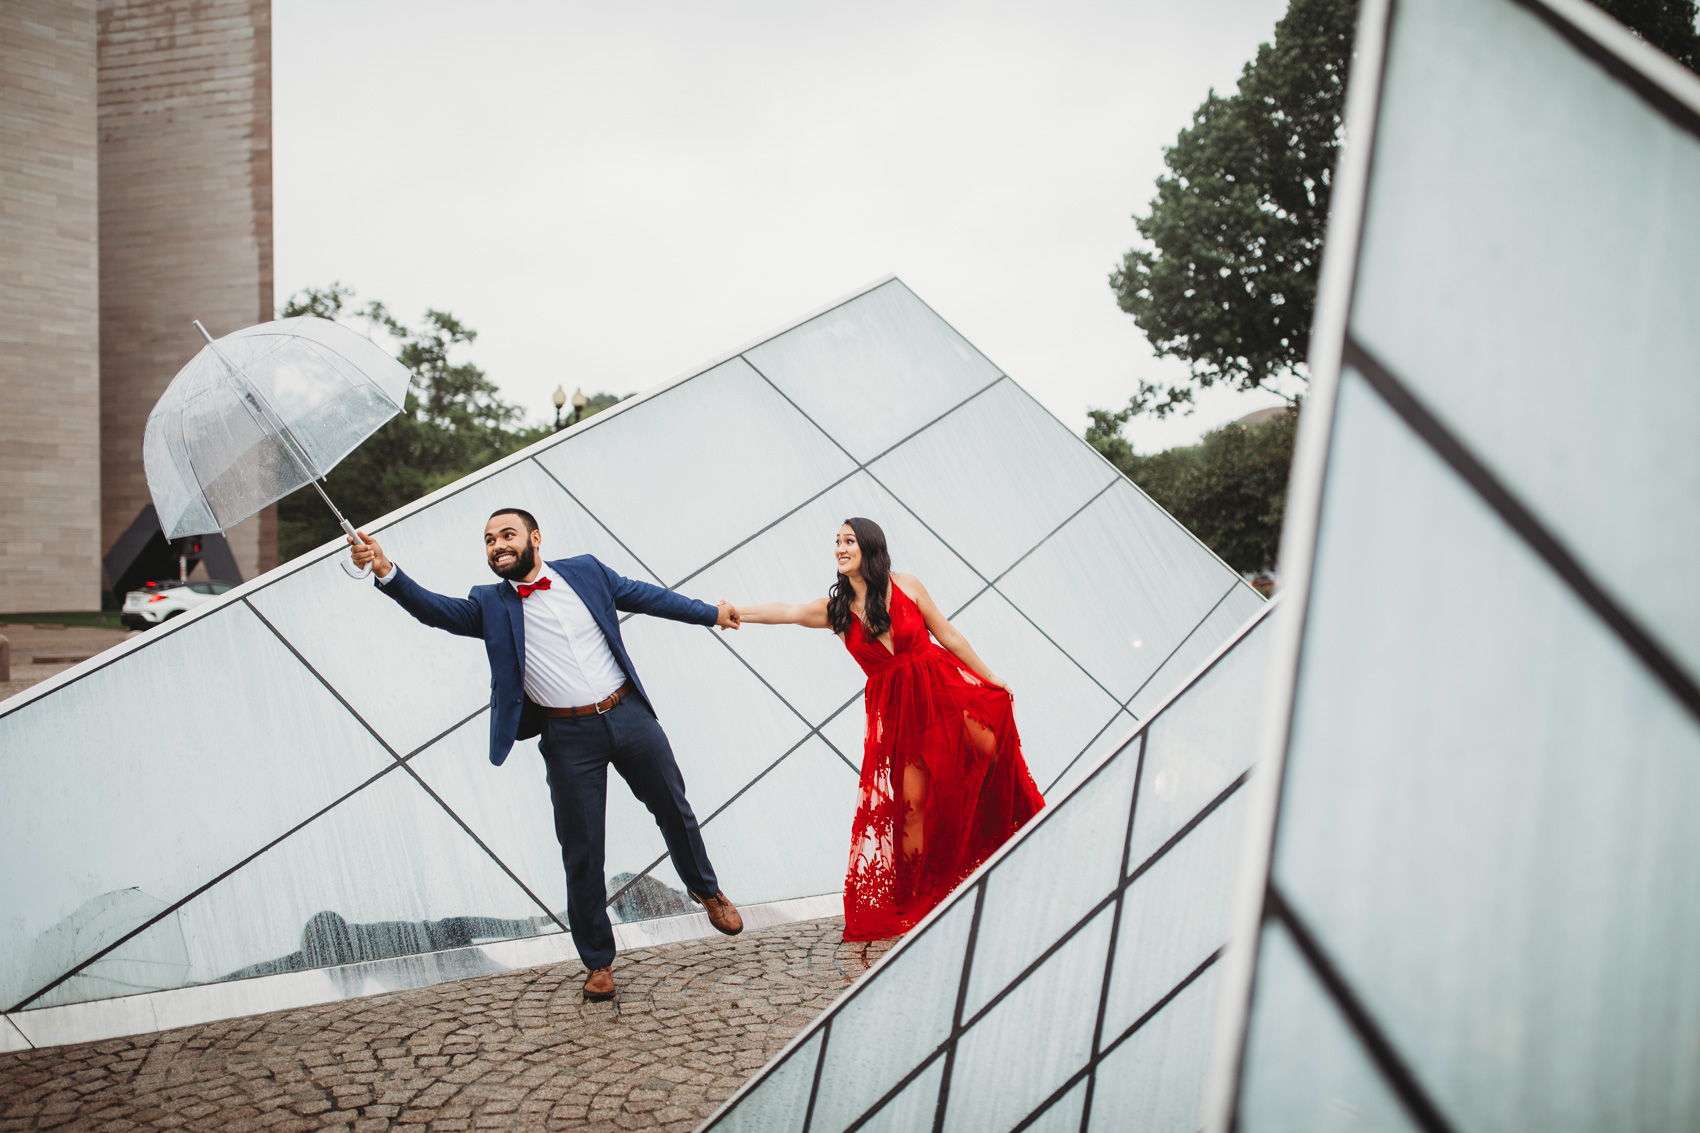 national-art-gallery-engagement-session-23.jpg